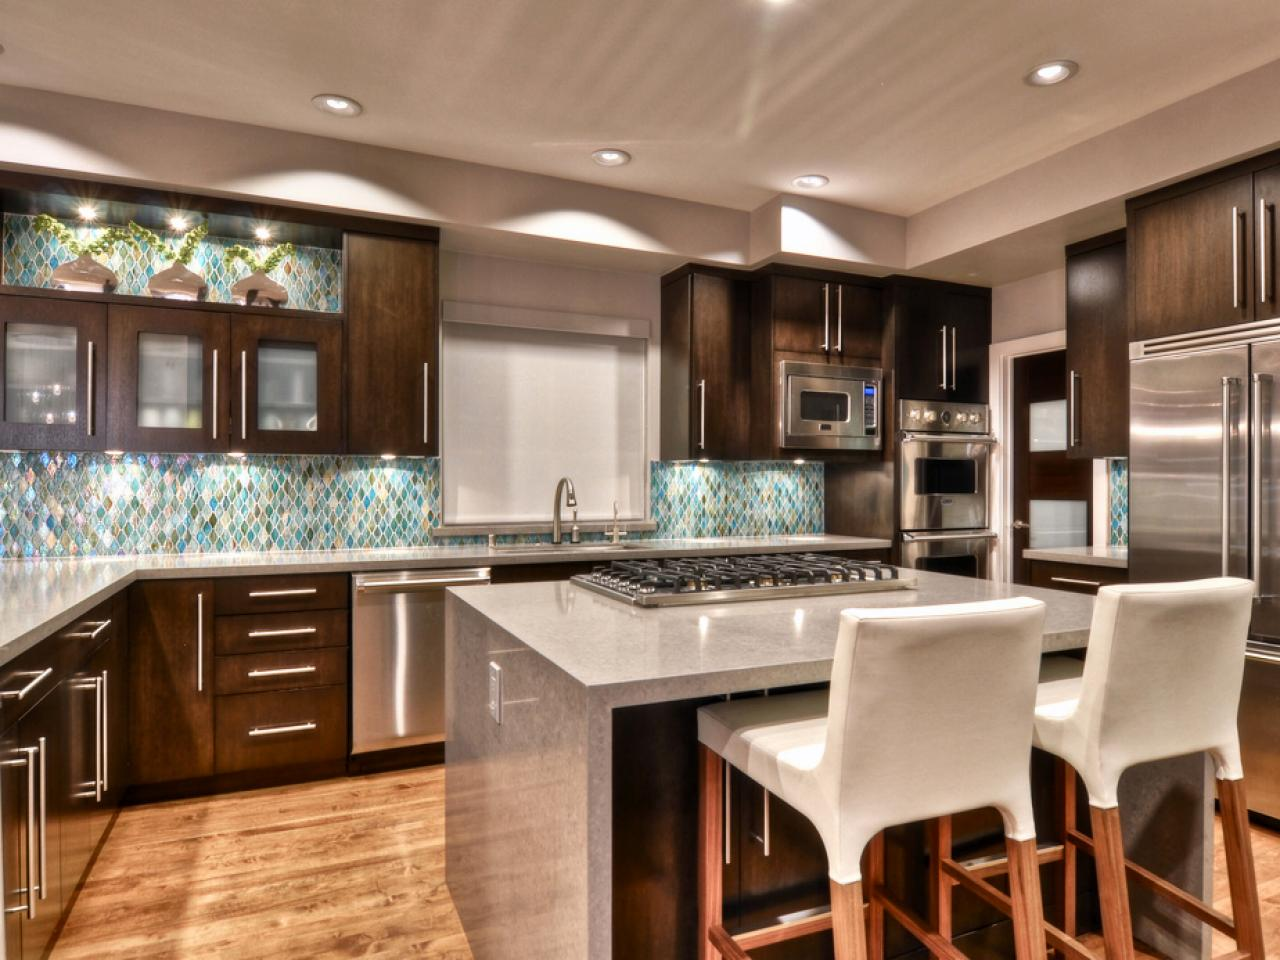 rs_shirry-dolgin-contemporary-kitchen-island_s4x3-jpg-rend-hgtvcom-1280-960